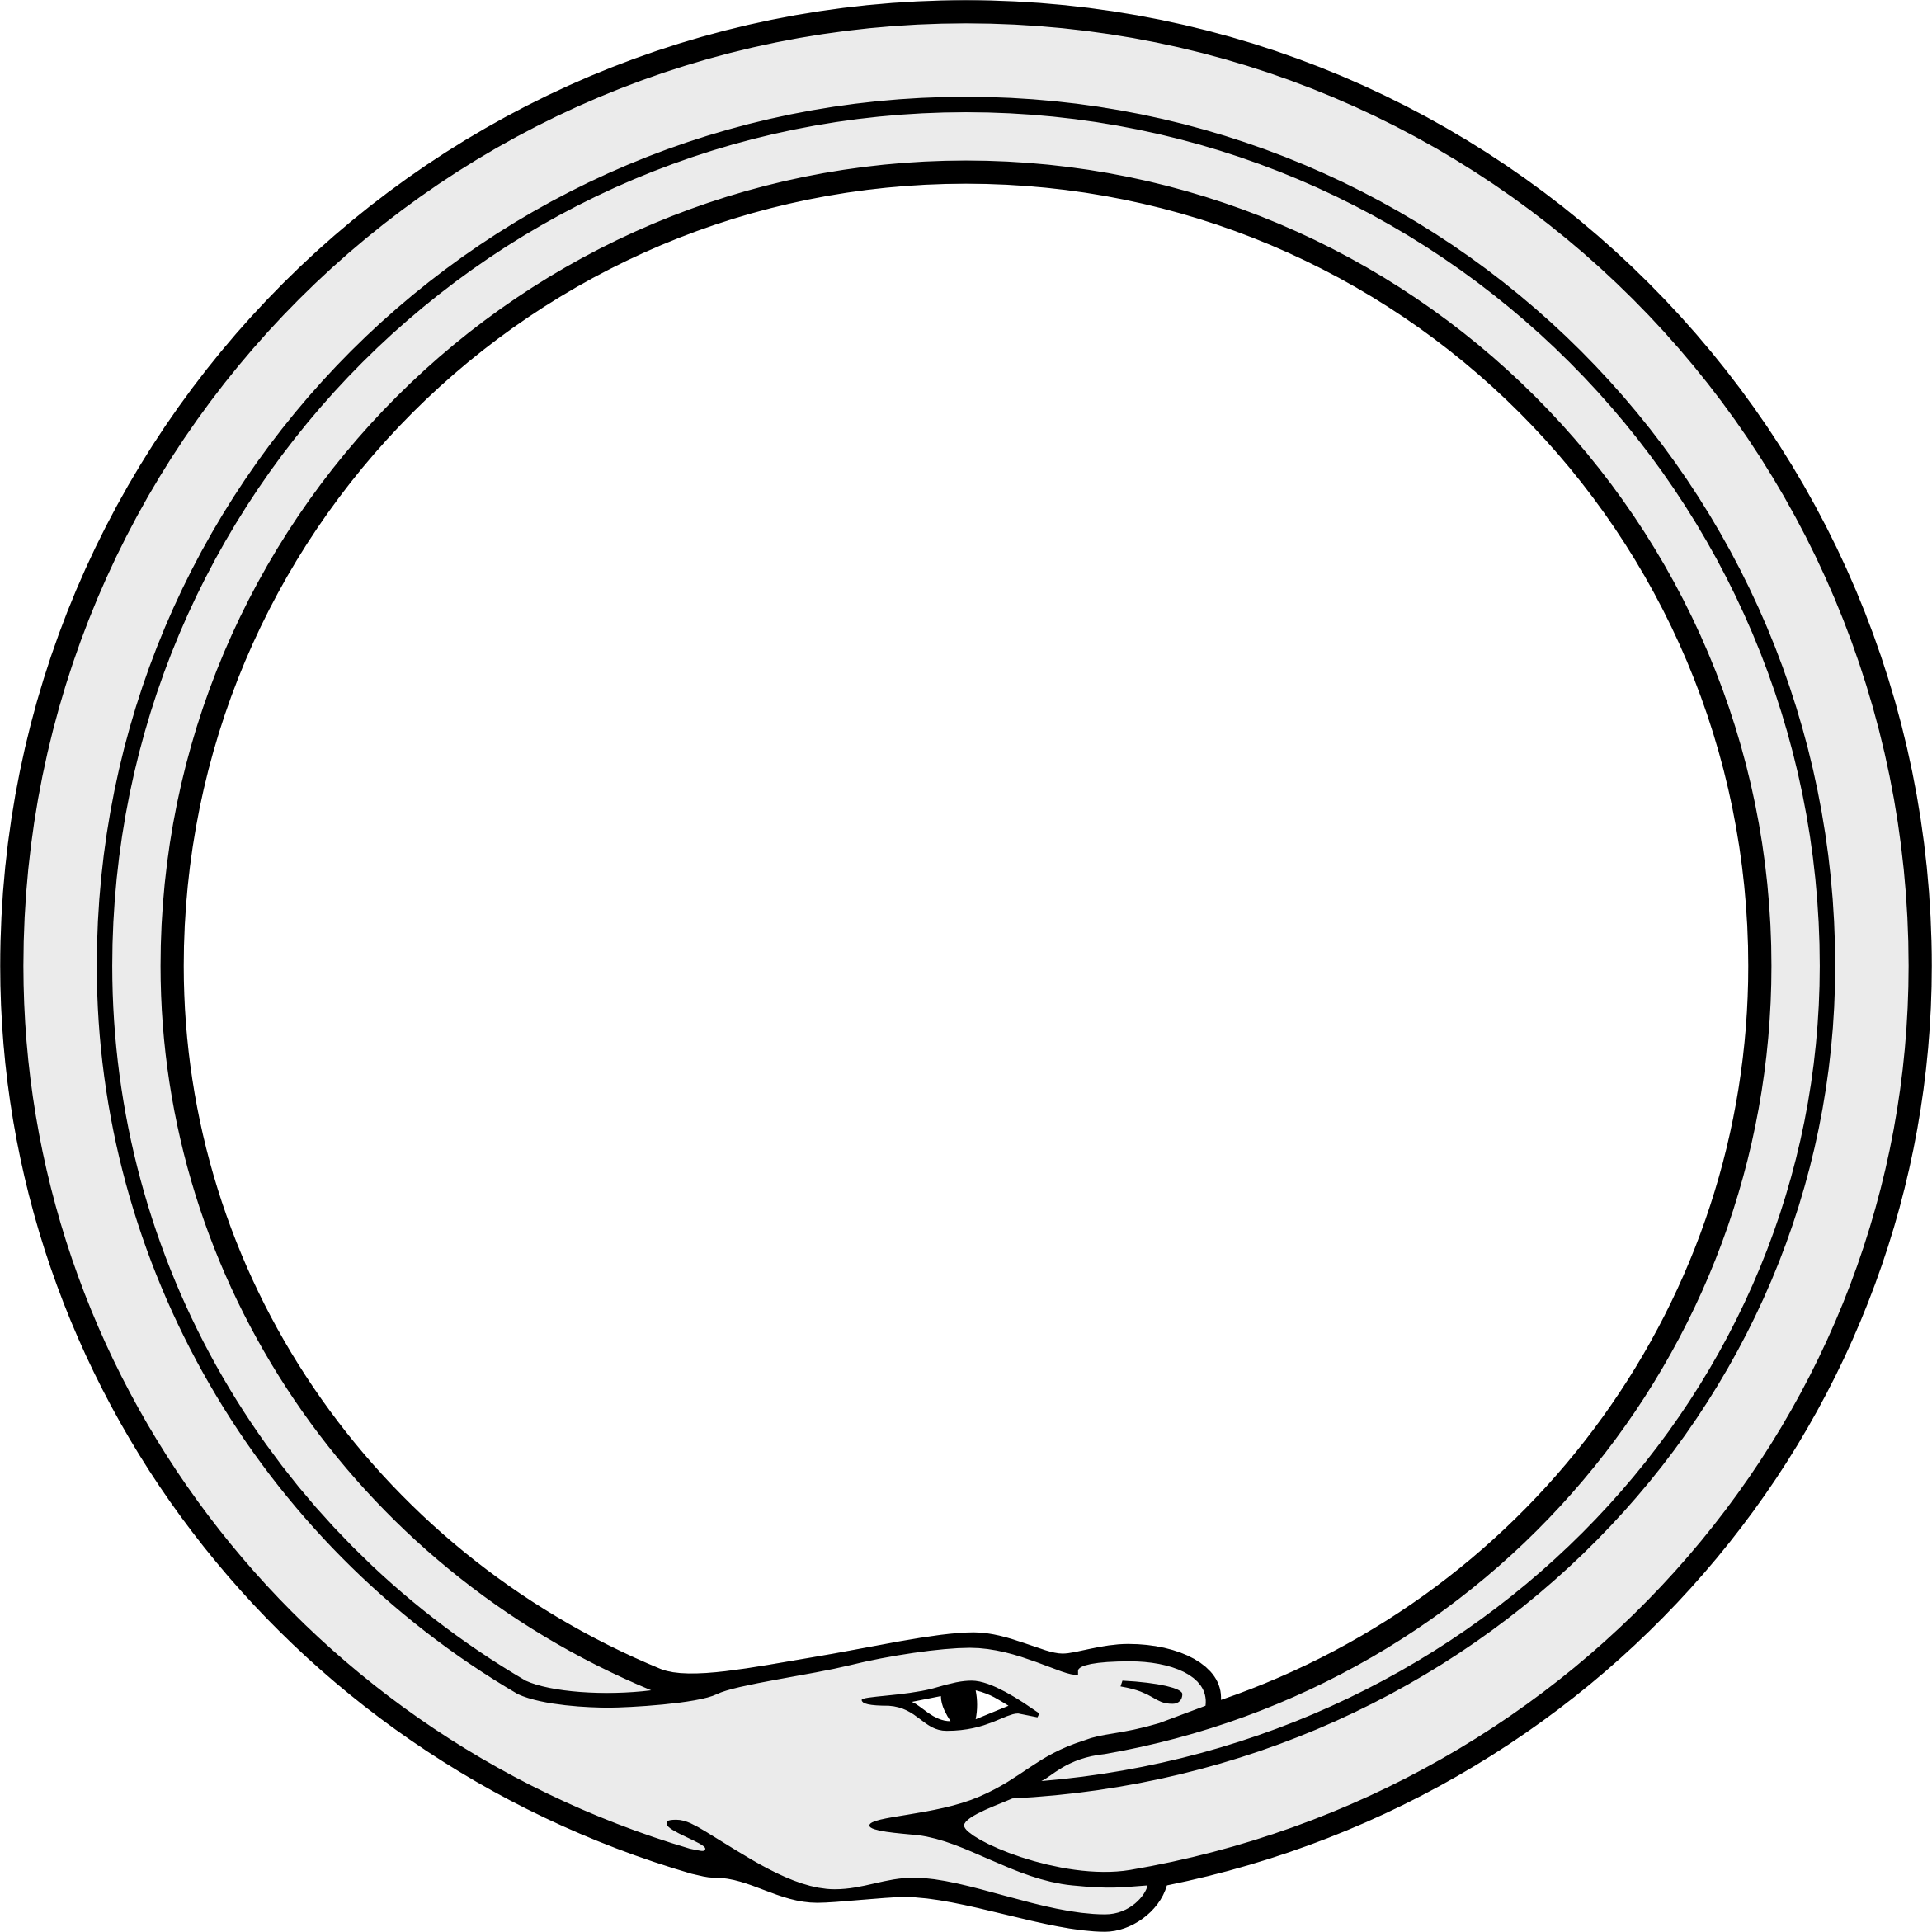 Ouroboros clipart #17, Download drawings